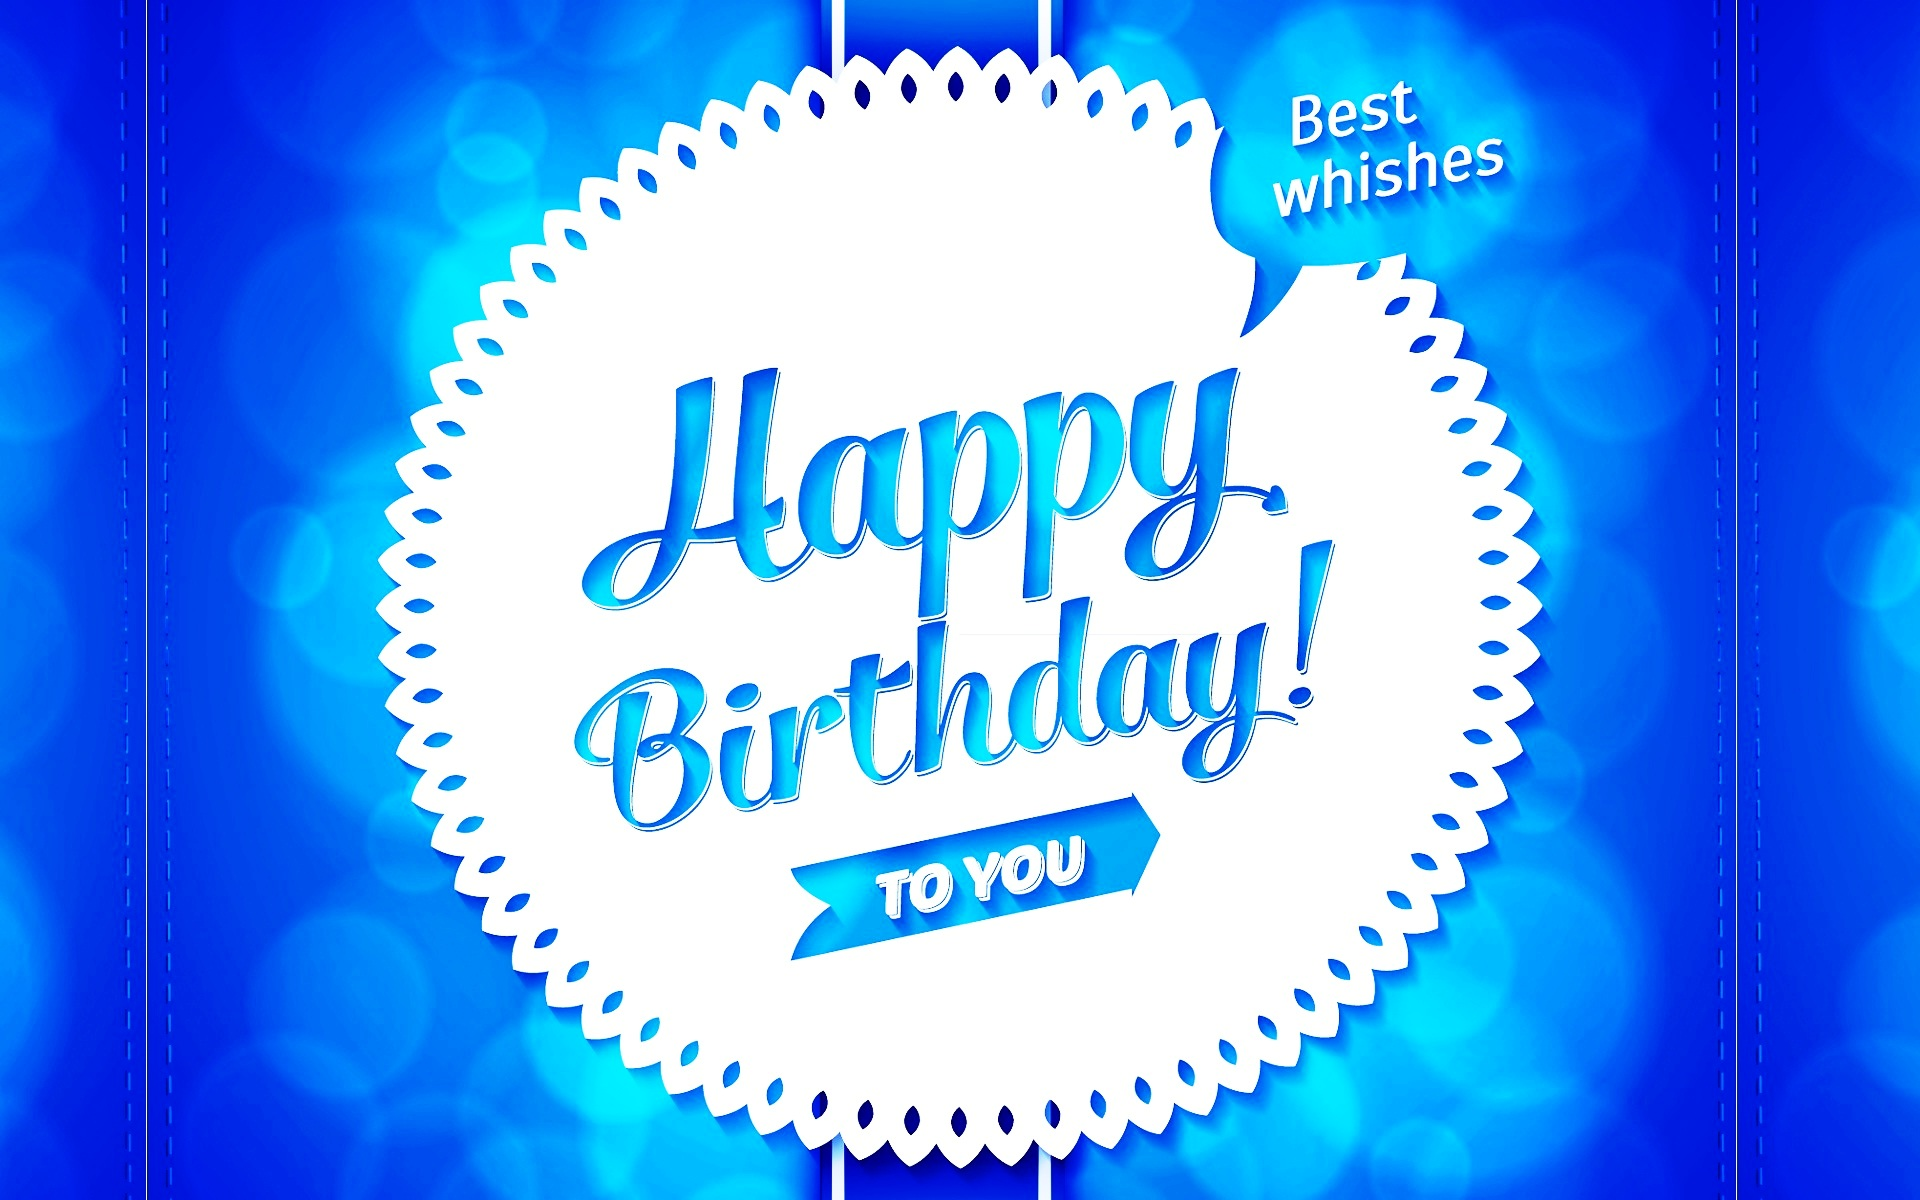 happy birthday to you images hd ; Happy-Birthday-latest-pure-HD-wallpaper